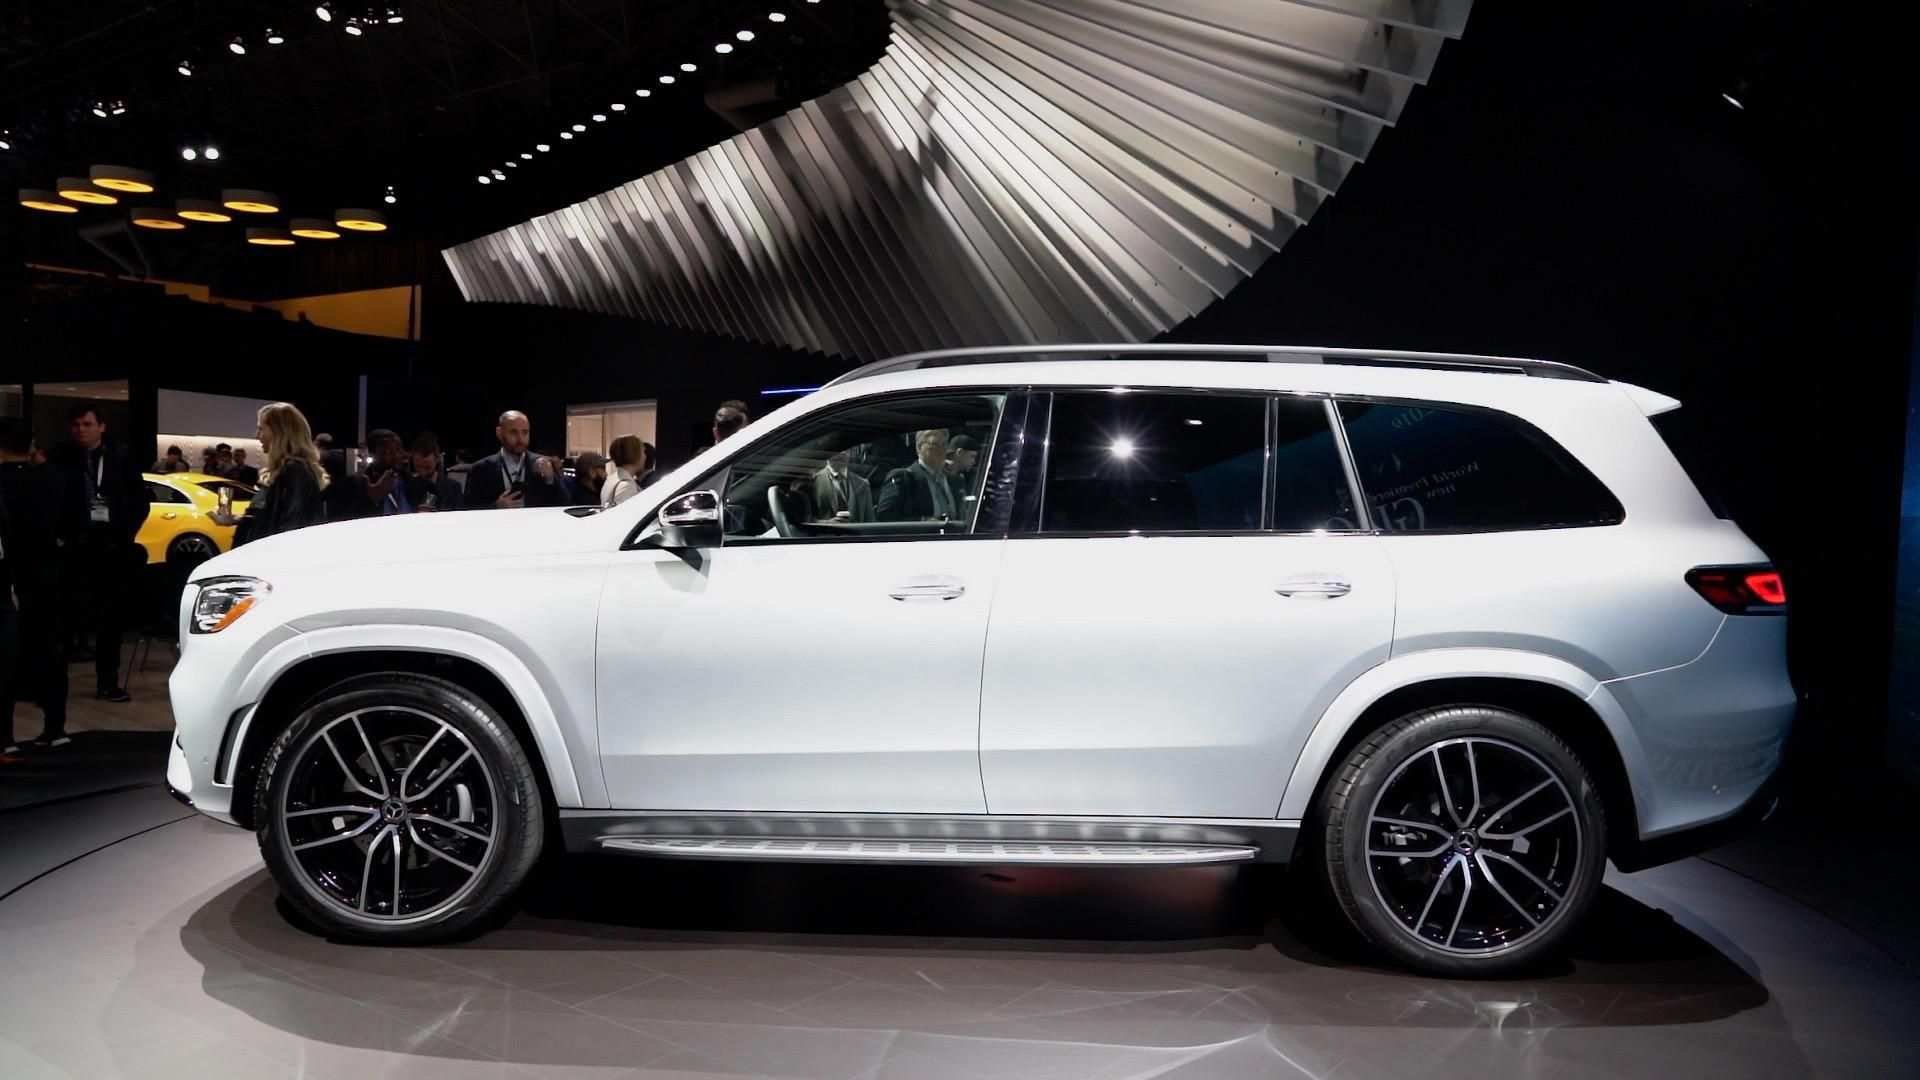 68 The Best 2020 Mercedes GLS Concept And Review